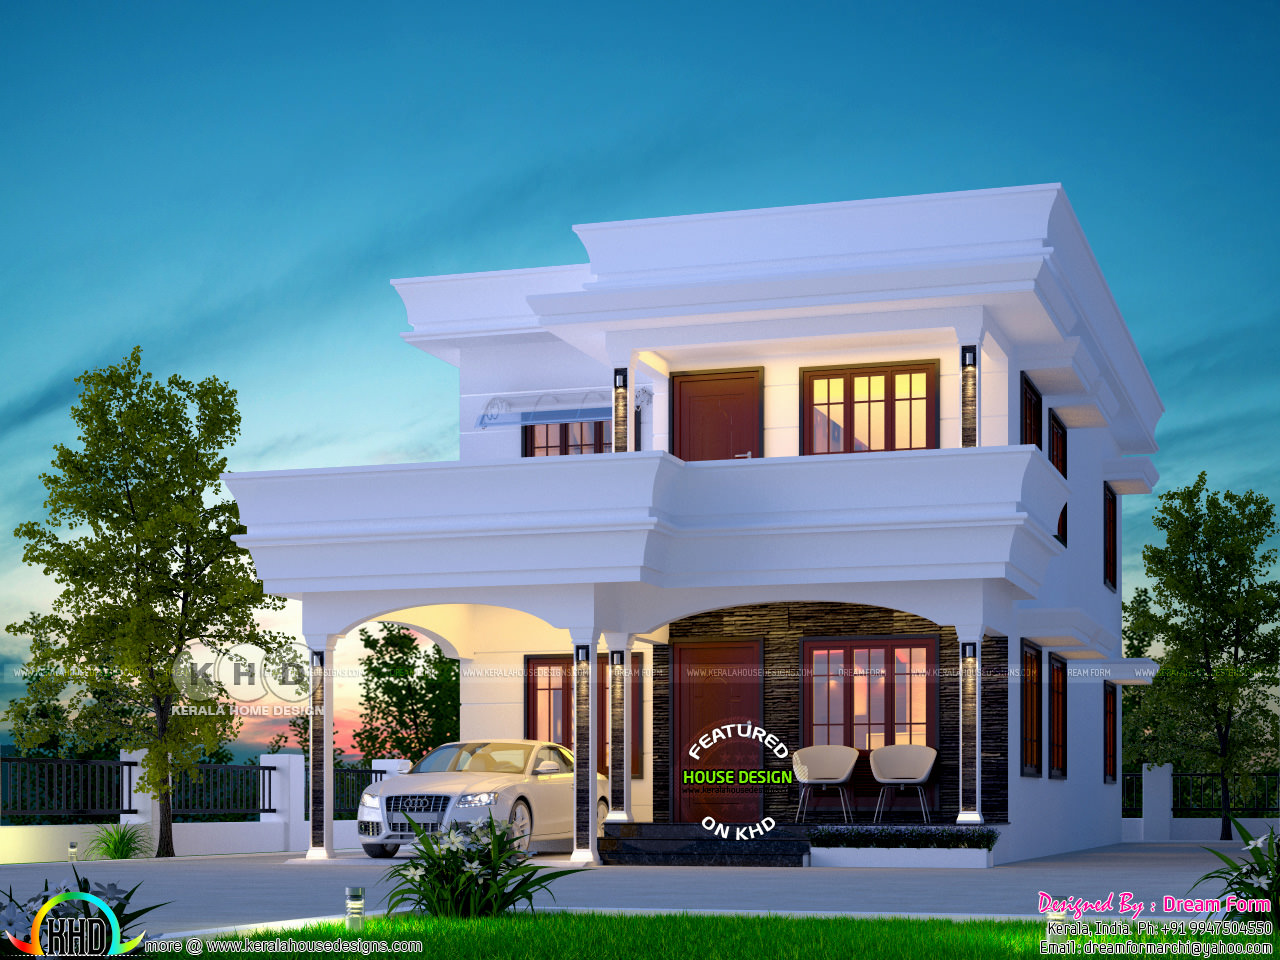 Grand 4 bedroom house in 5 cents of land kerala home for House plans in 5 cents